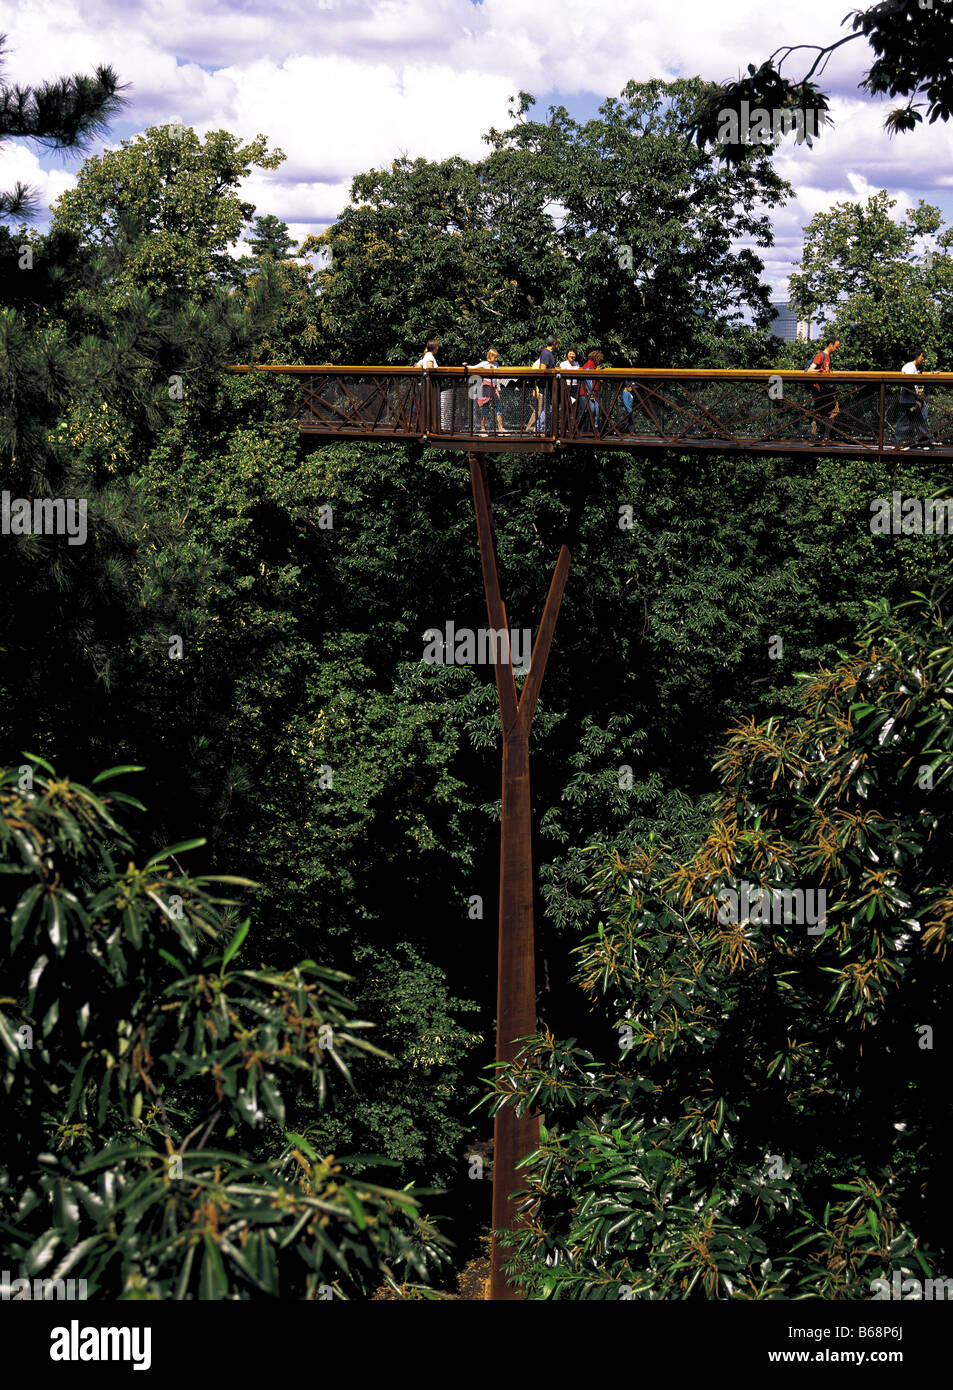 Rhizotron et Xstrata Treetop Walkway au Royal Botanical Gardens de Kew en Angleterre Photo Stock